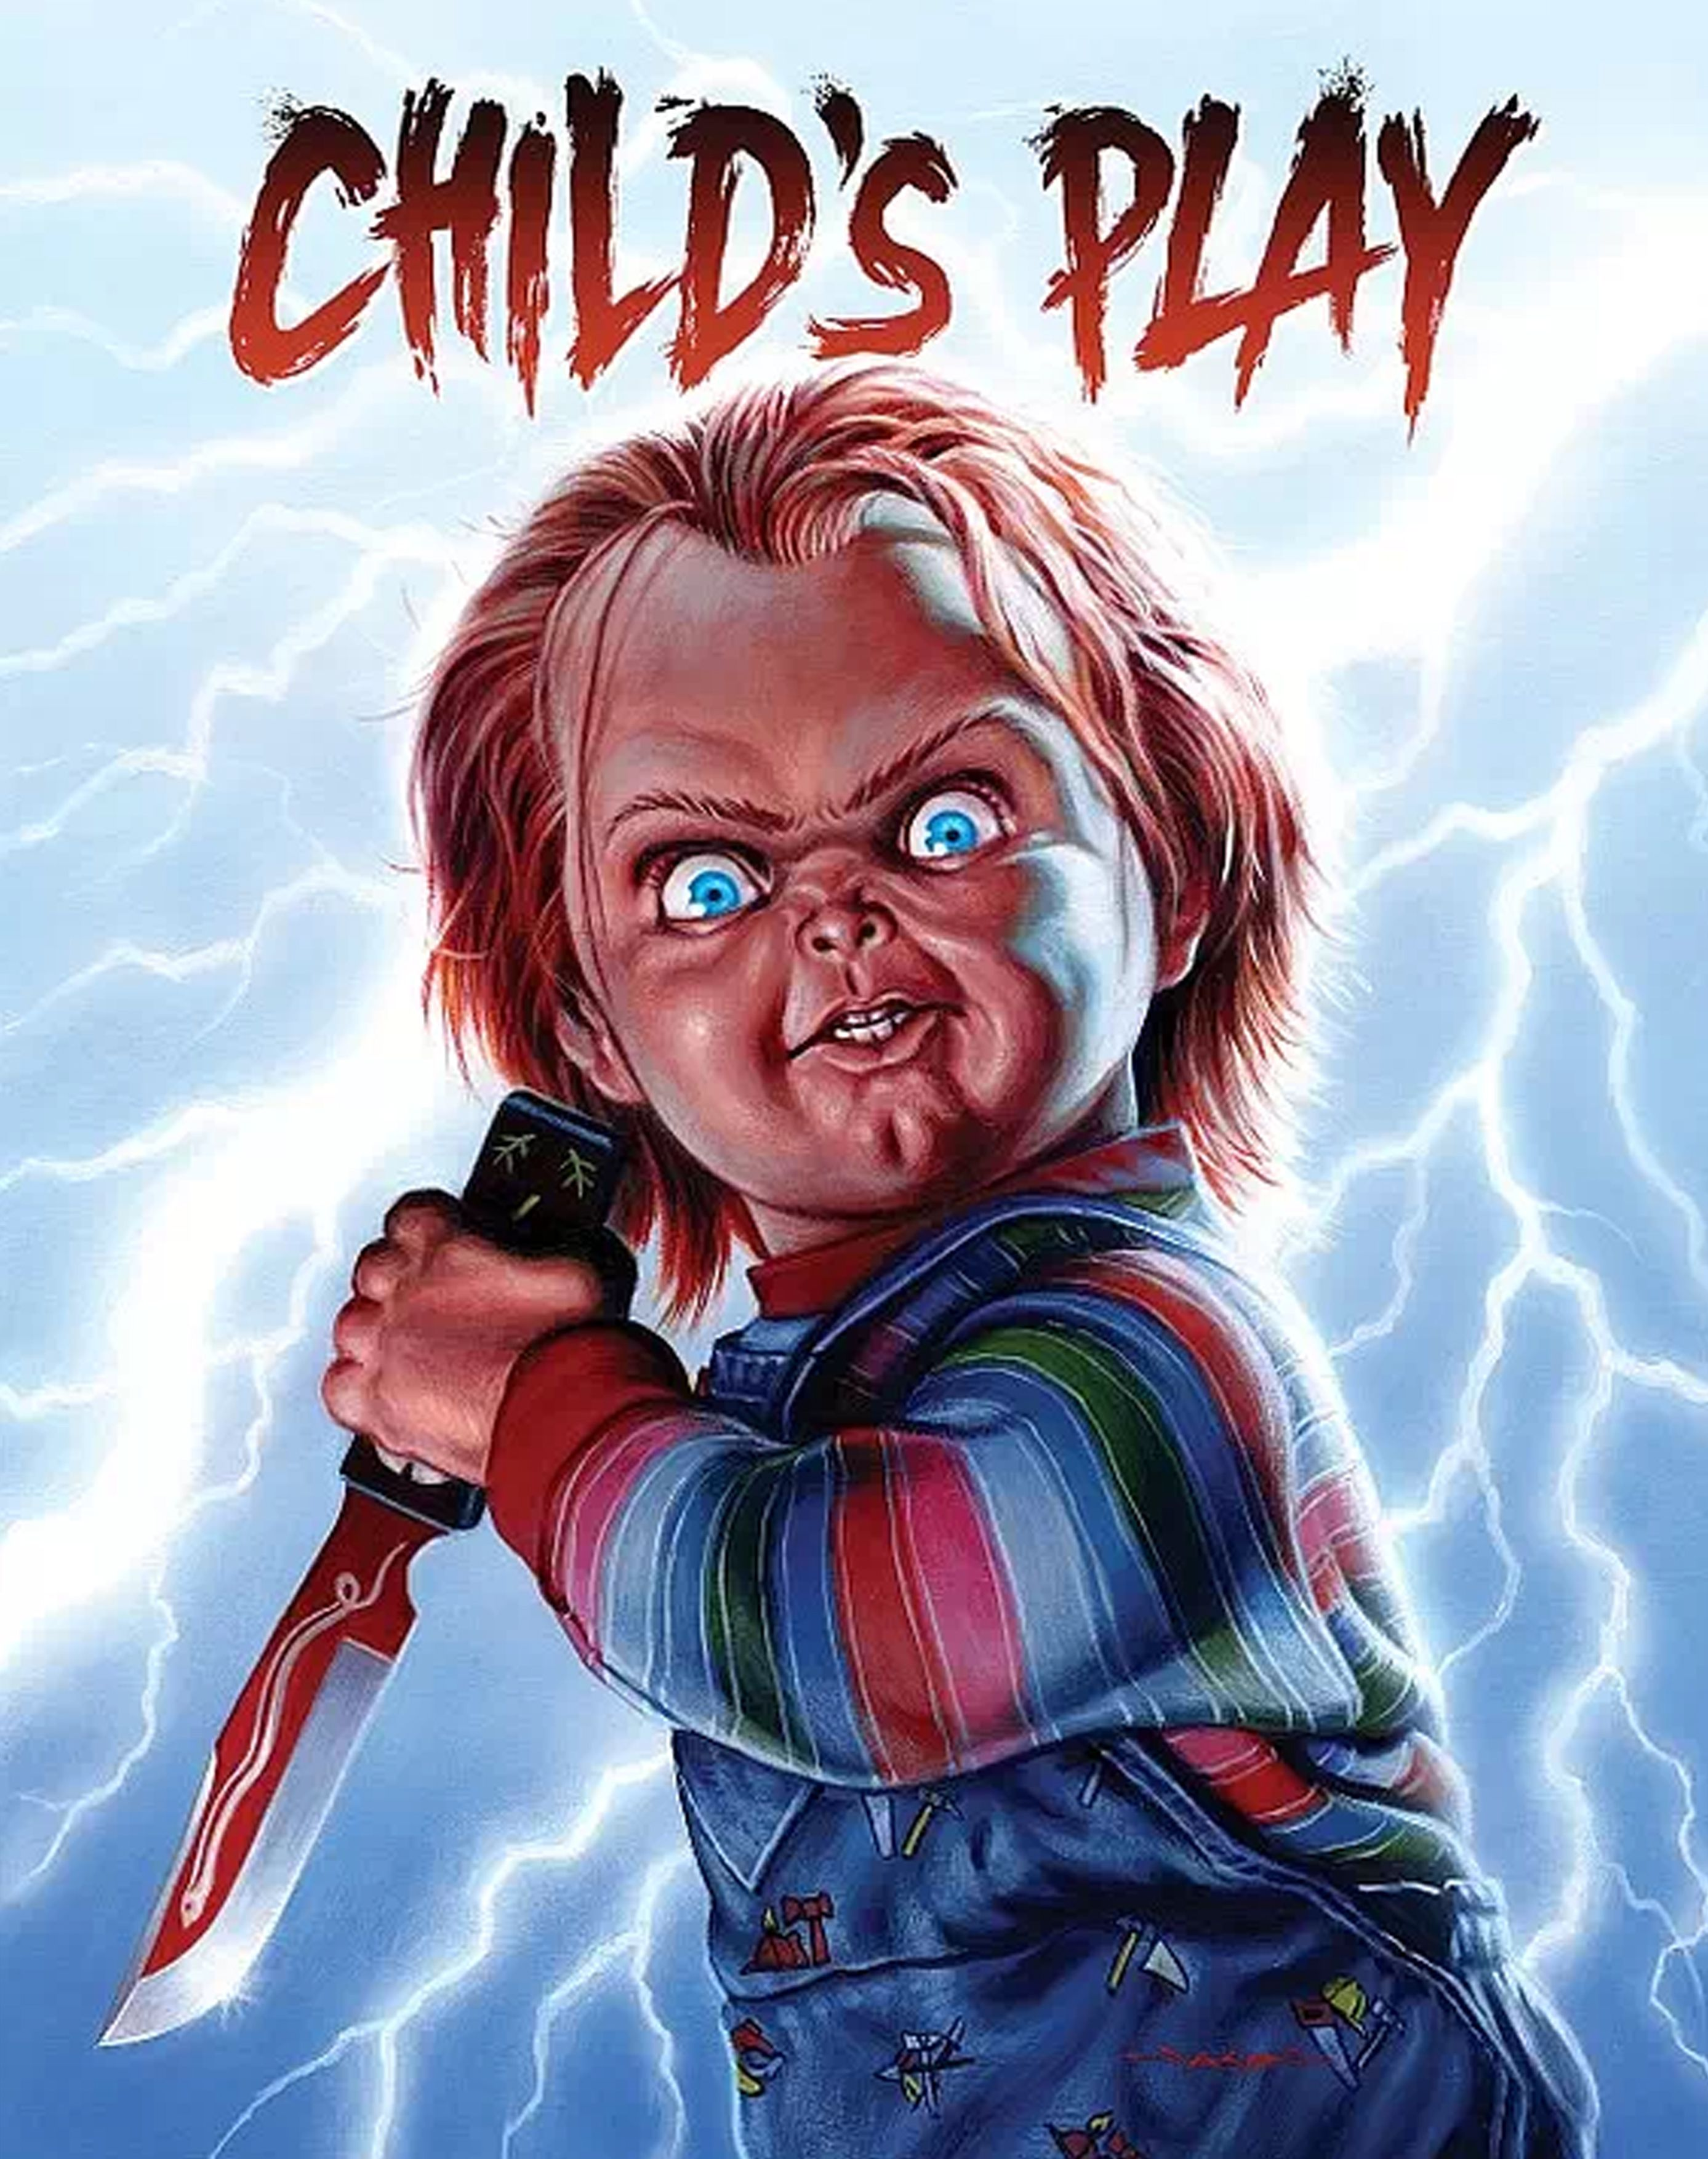 Childs play horror poster classic horror movies horror